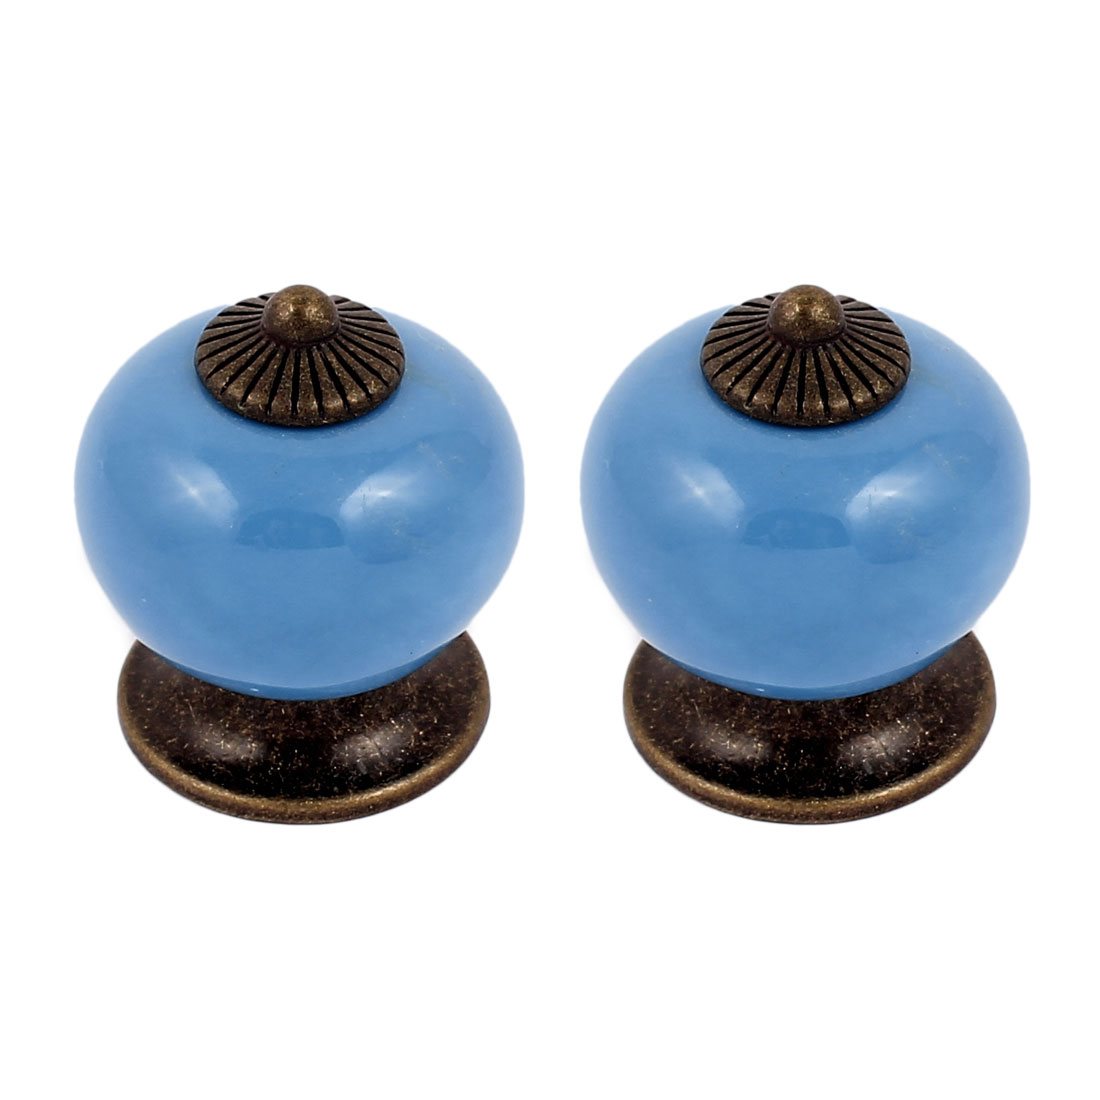 Cabinet Wardrobe Drawer Door Pull Round Ceramic Knobs Handle Blue 2pcs